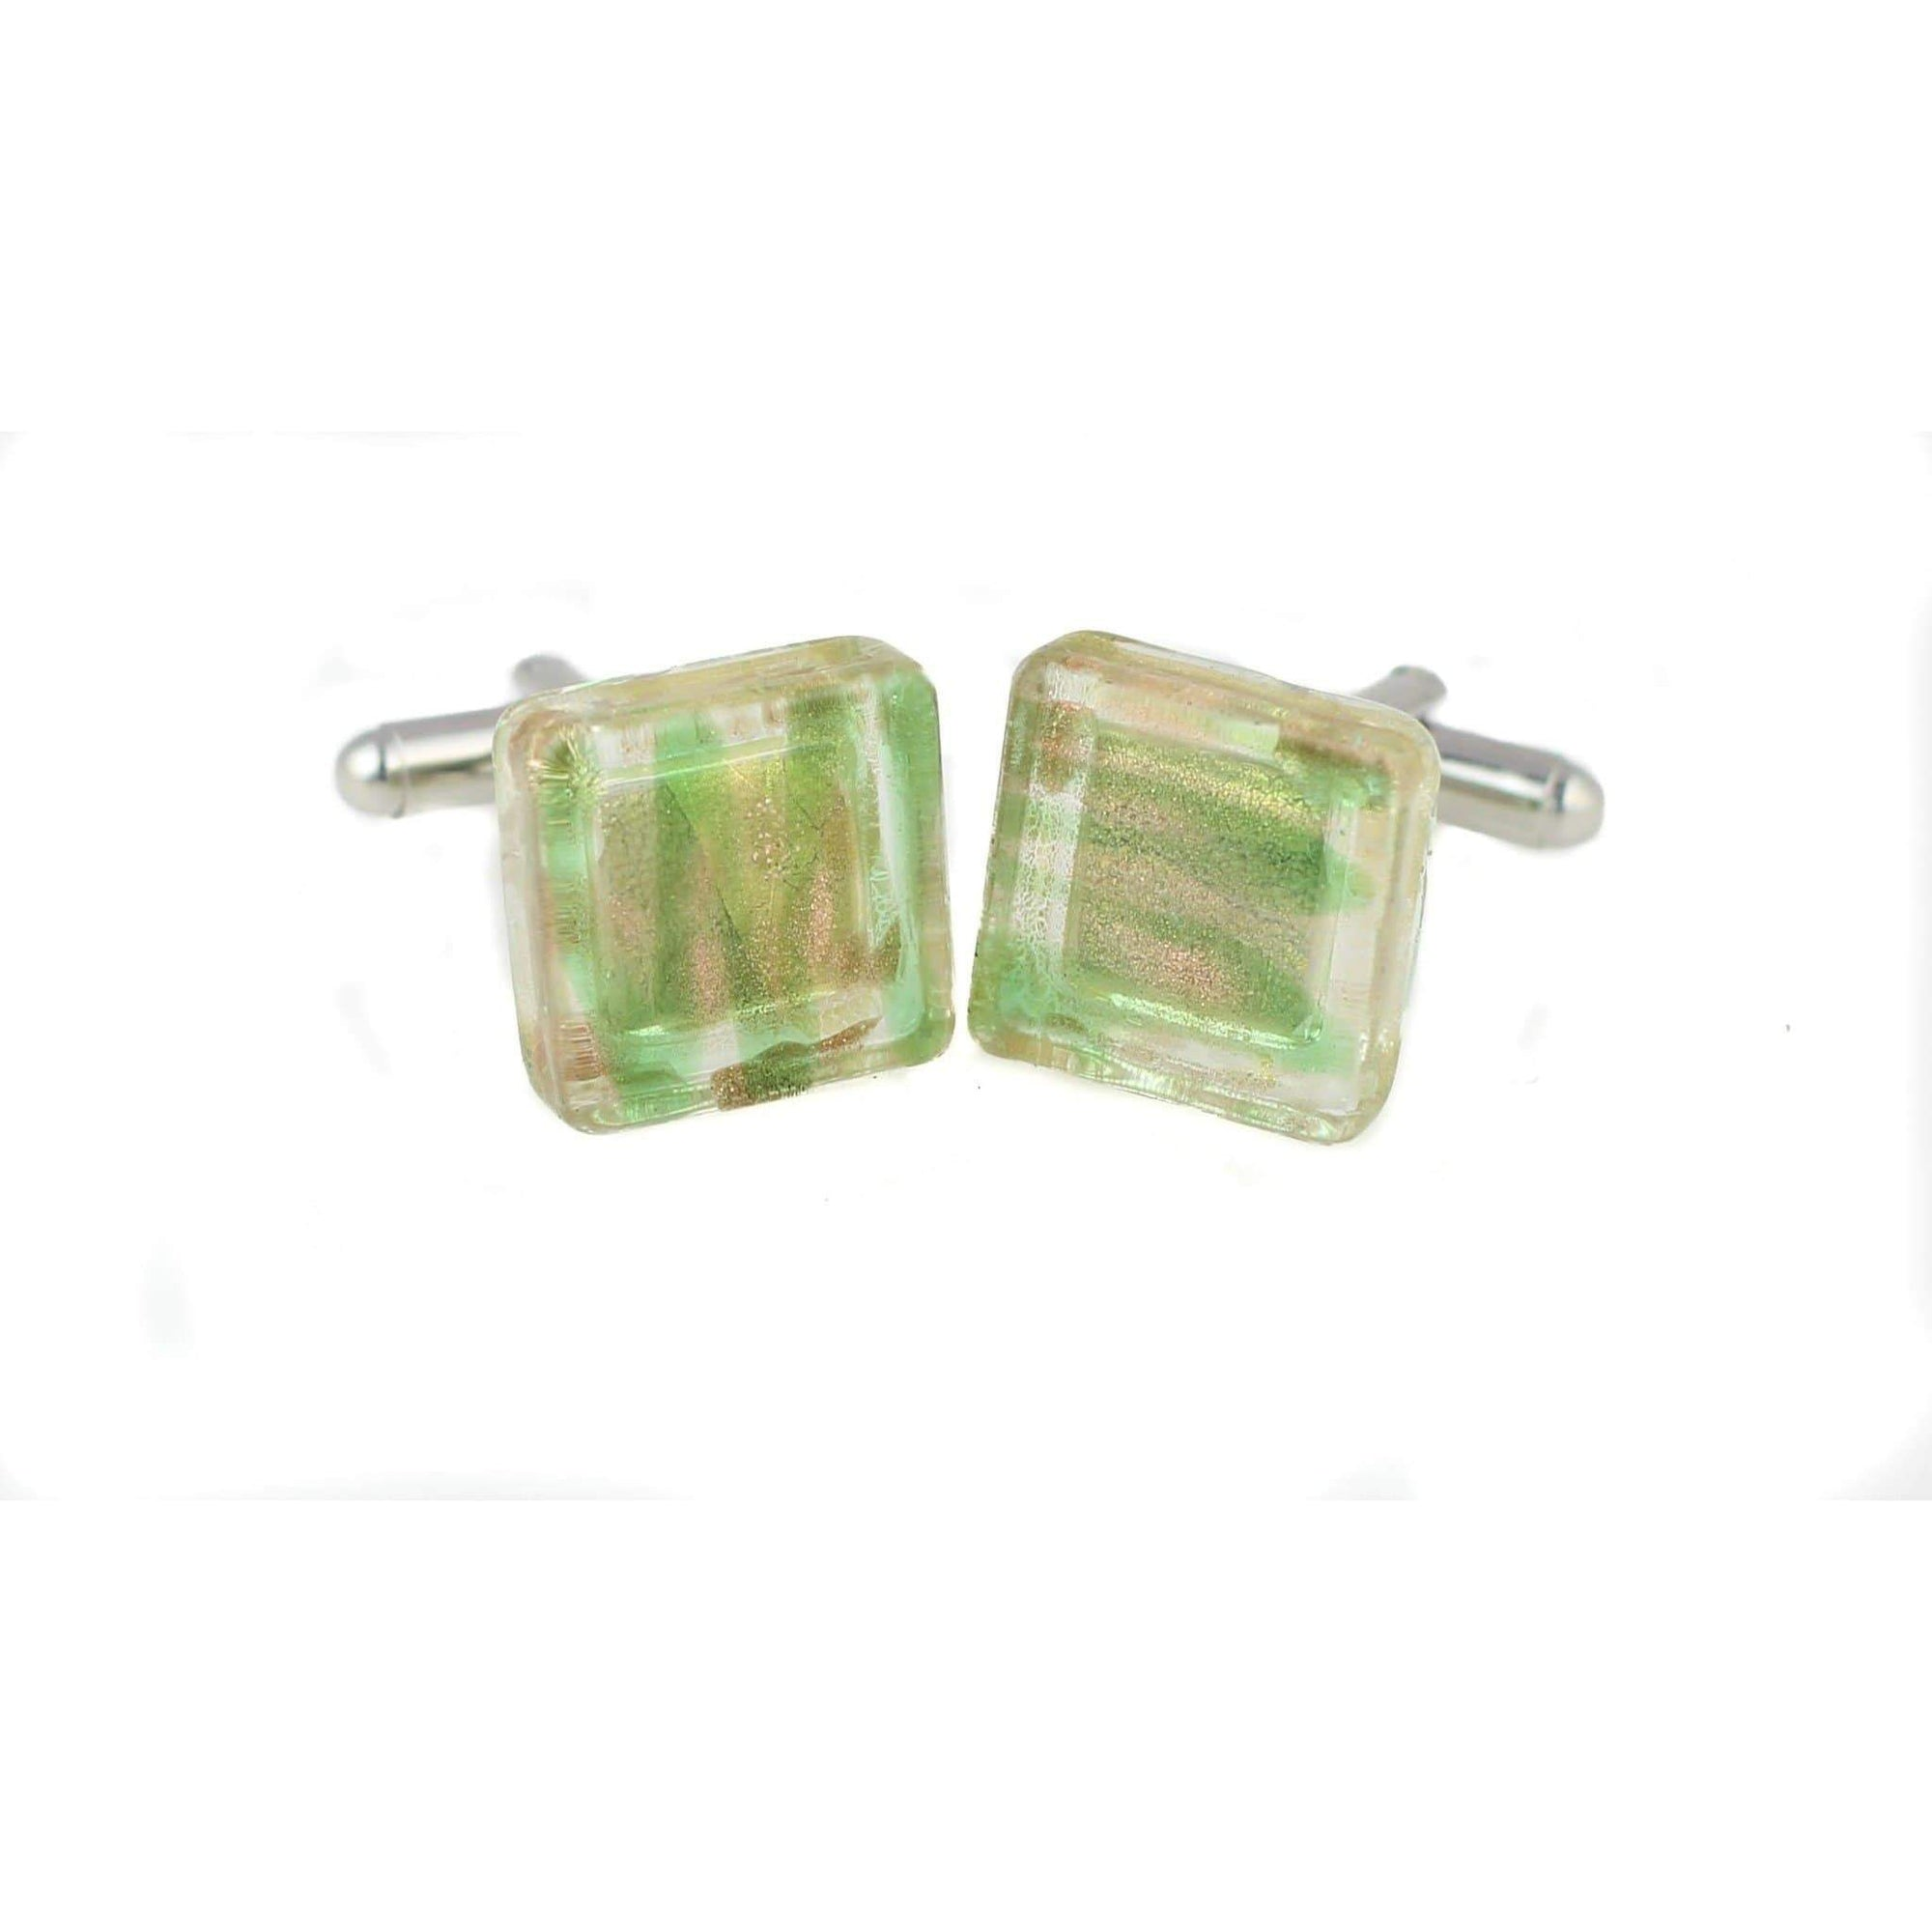 Yellow and Green Patterned Glass Cufflinks Classic & Modern Cufflinks Clinks Australia Yellow and Green Patterned Glass Cufflinks